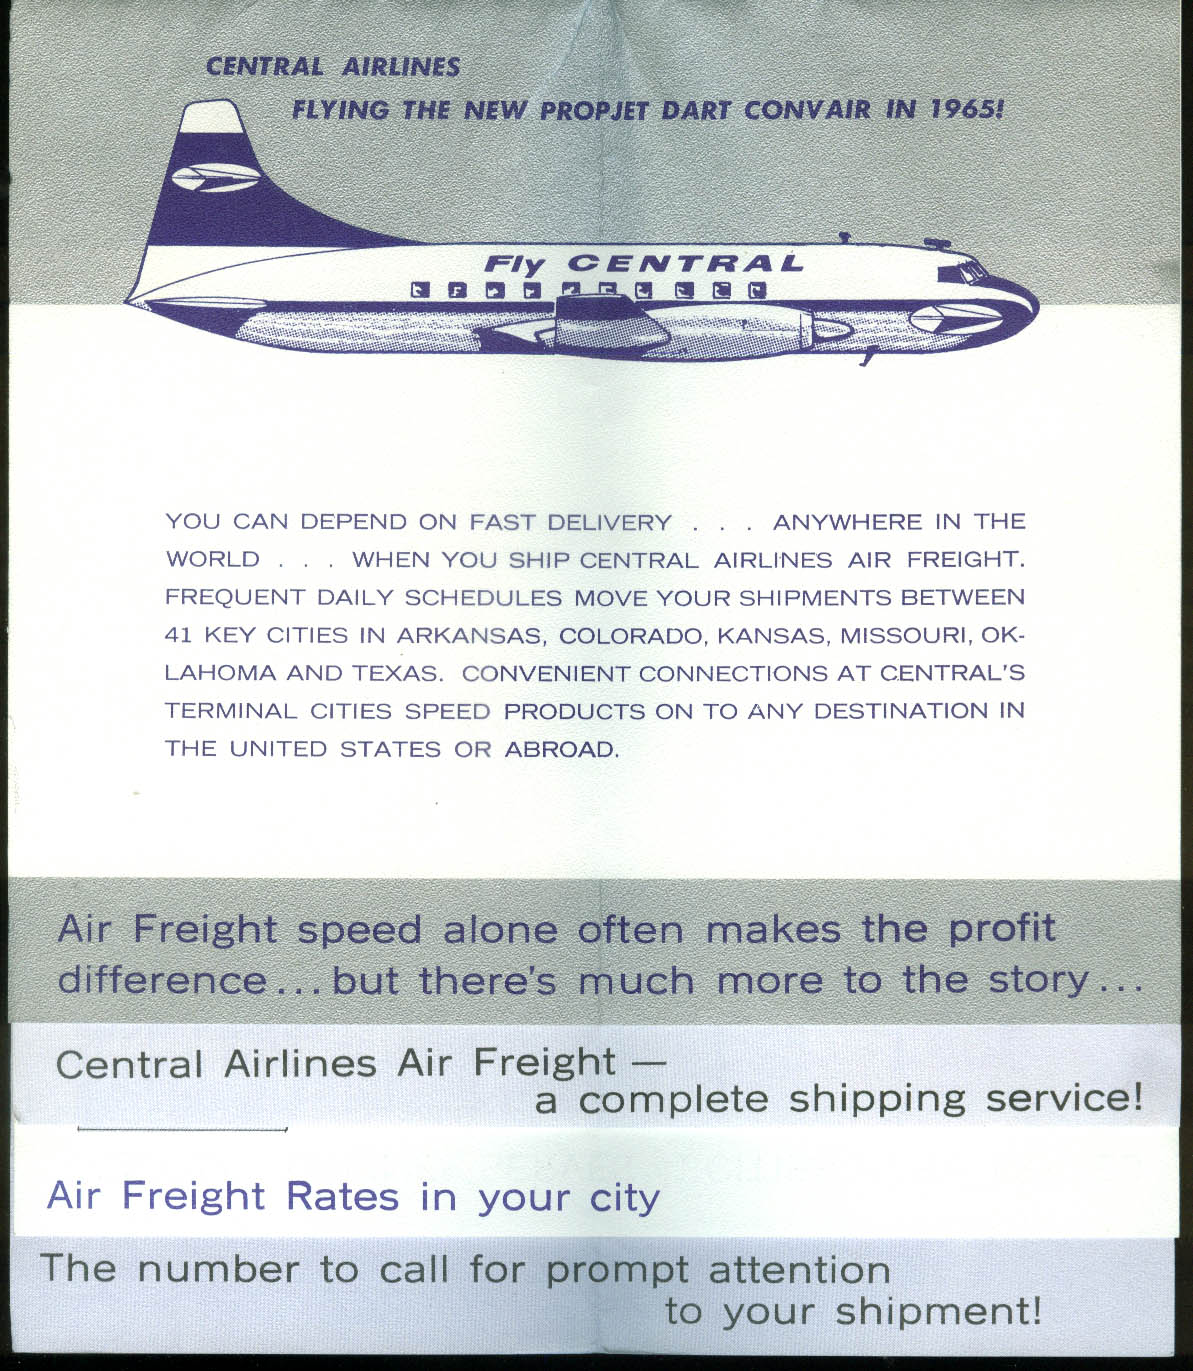 Central Airlines How Airfreight Pays Convair Propjet Dart 1965 airline brochure